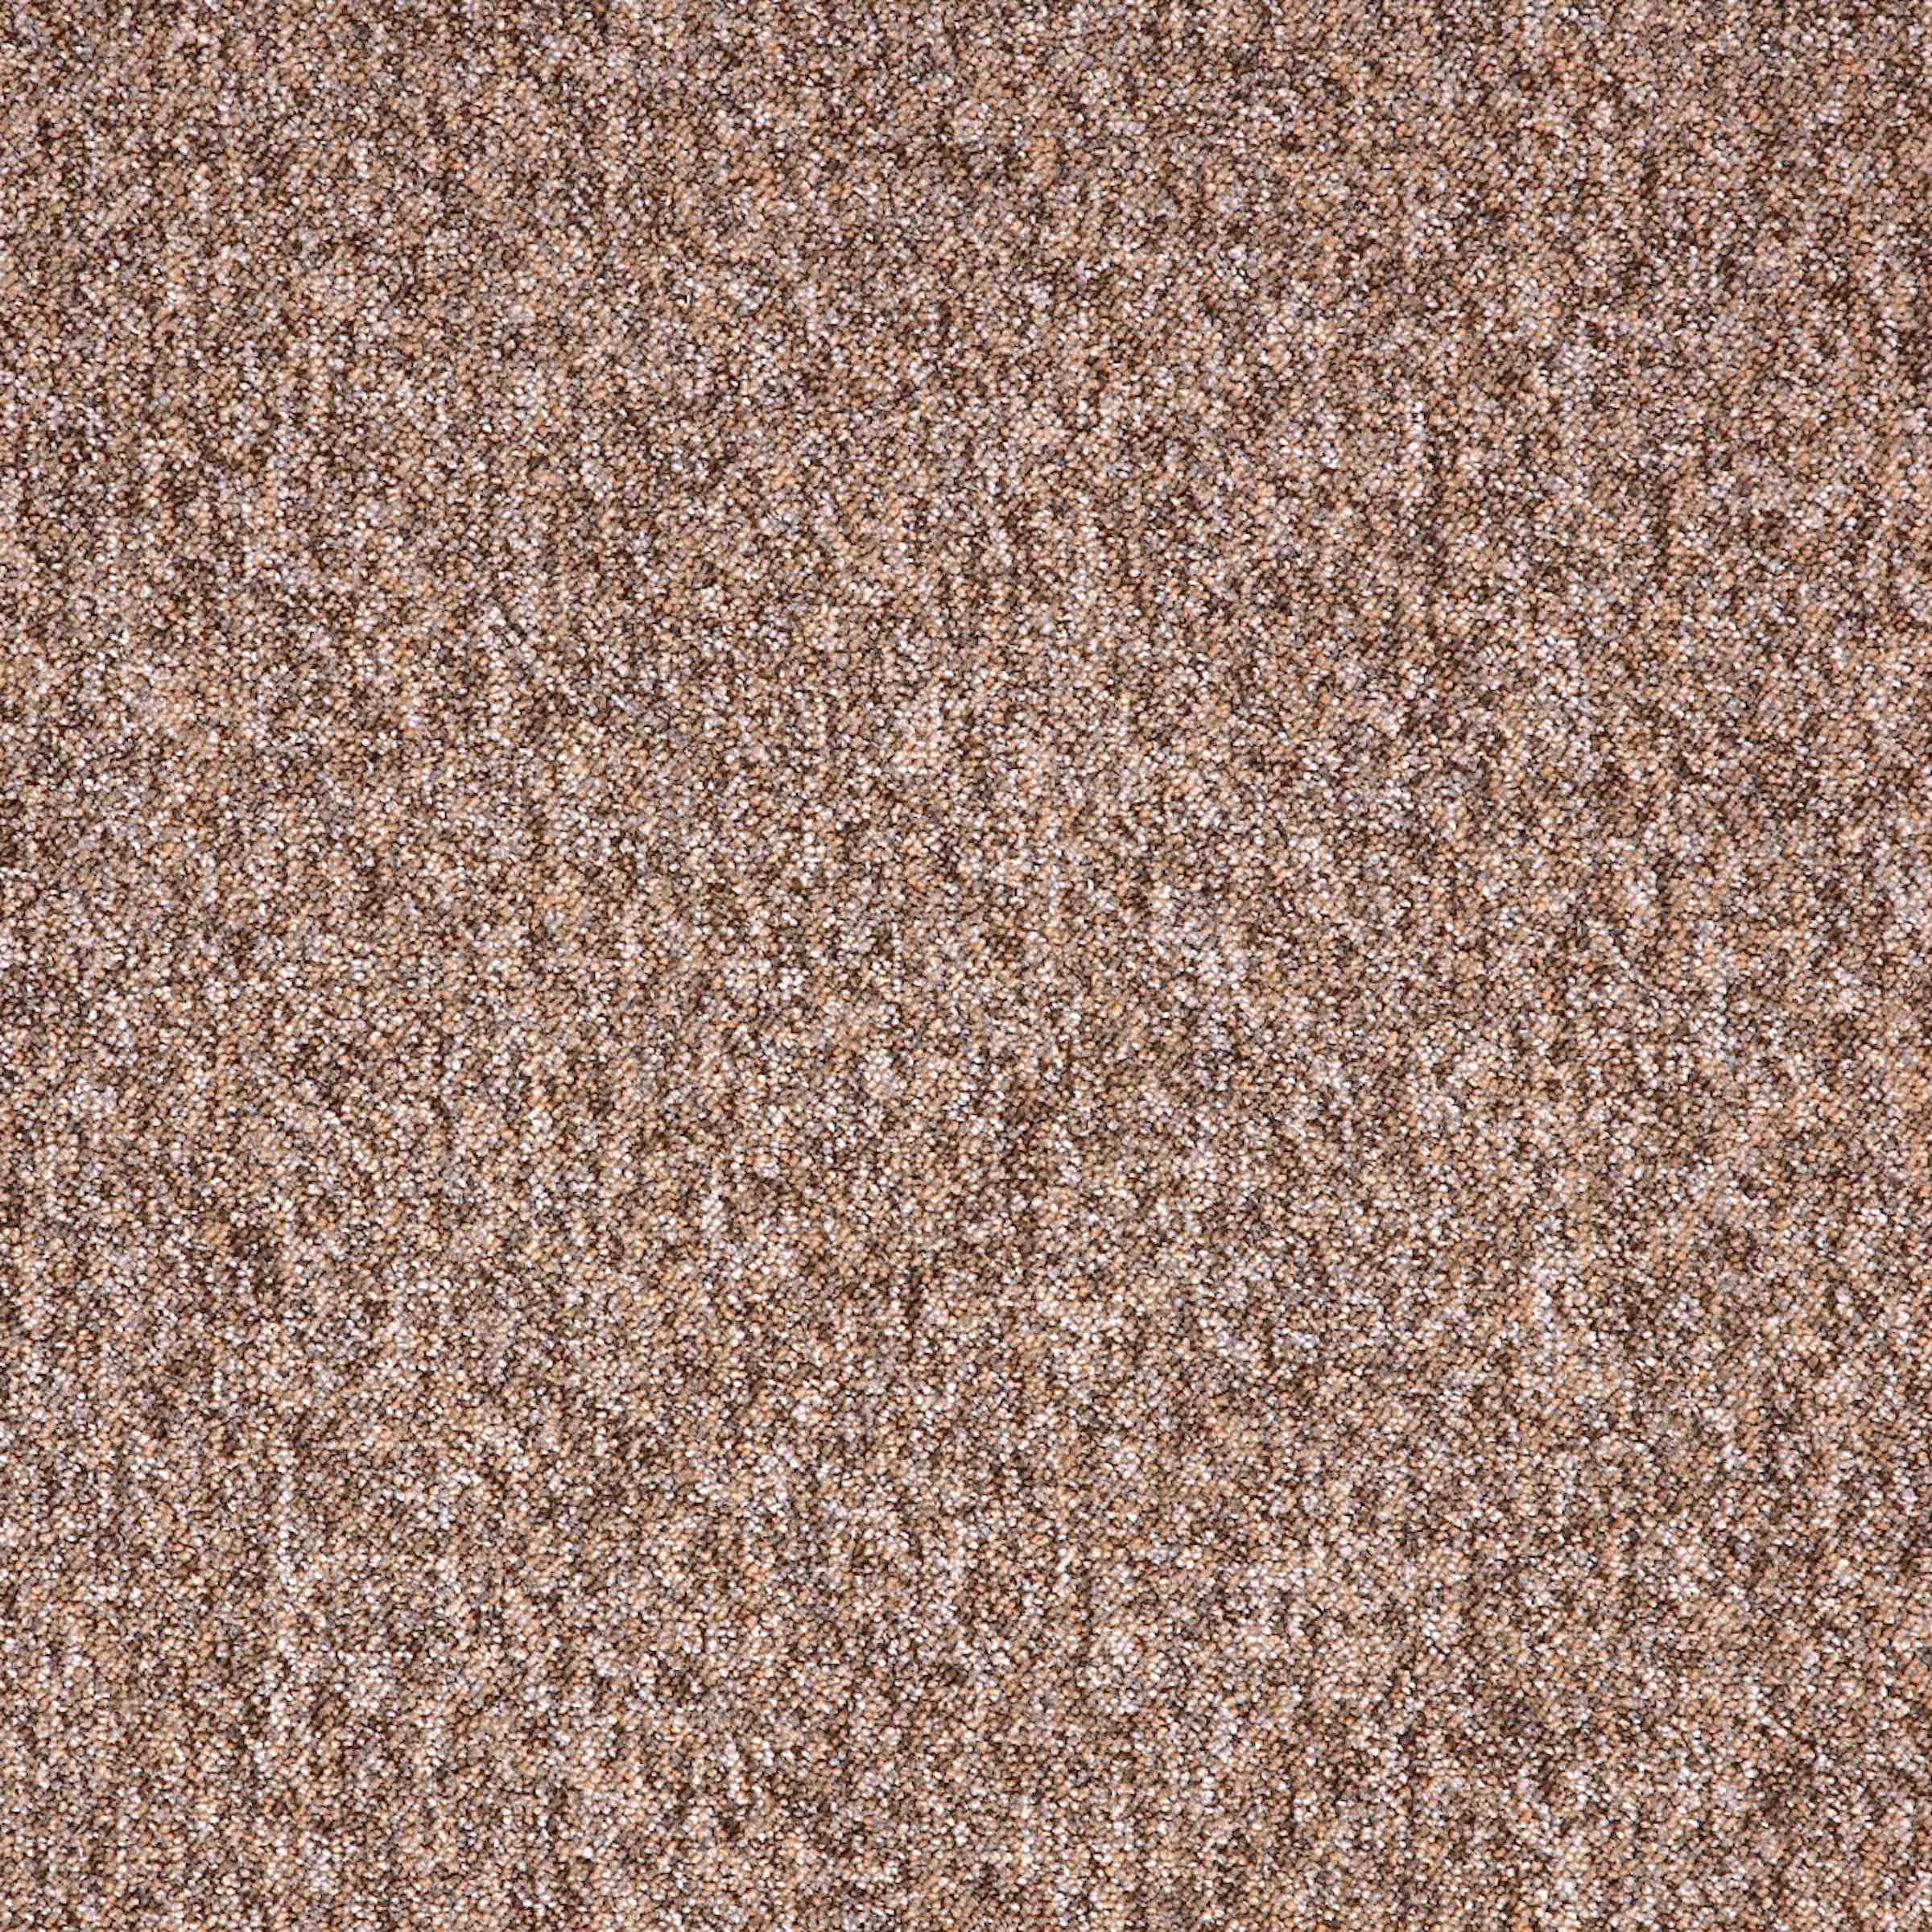 Toccarre | Montagna | Paragon Carpet Tiles | Commercial Carpet Tiles